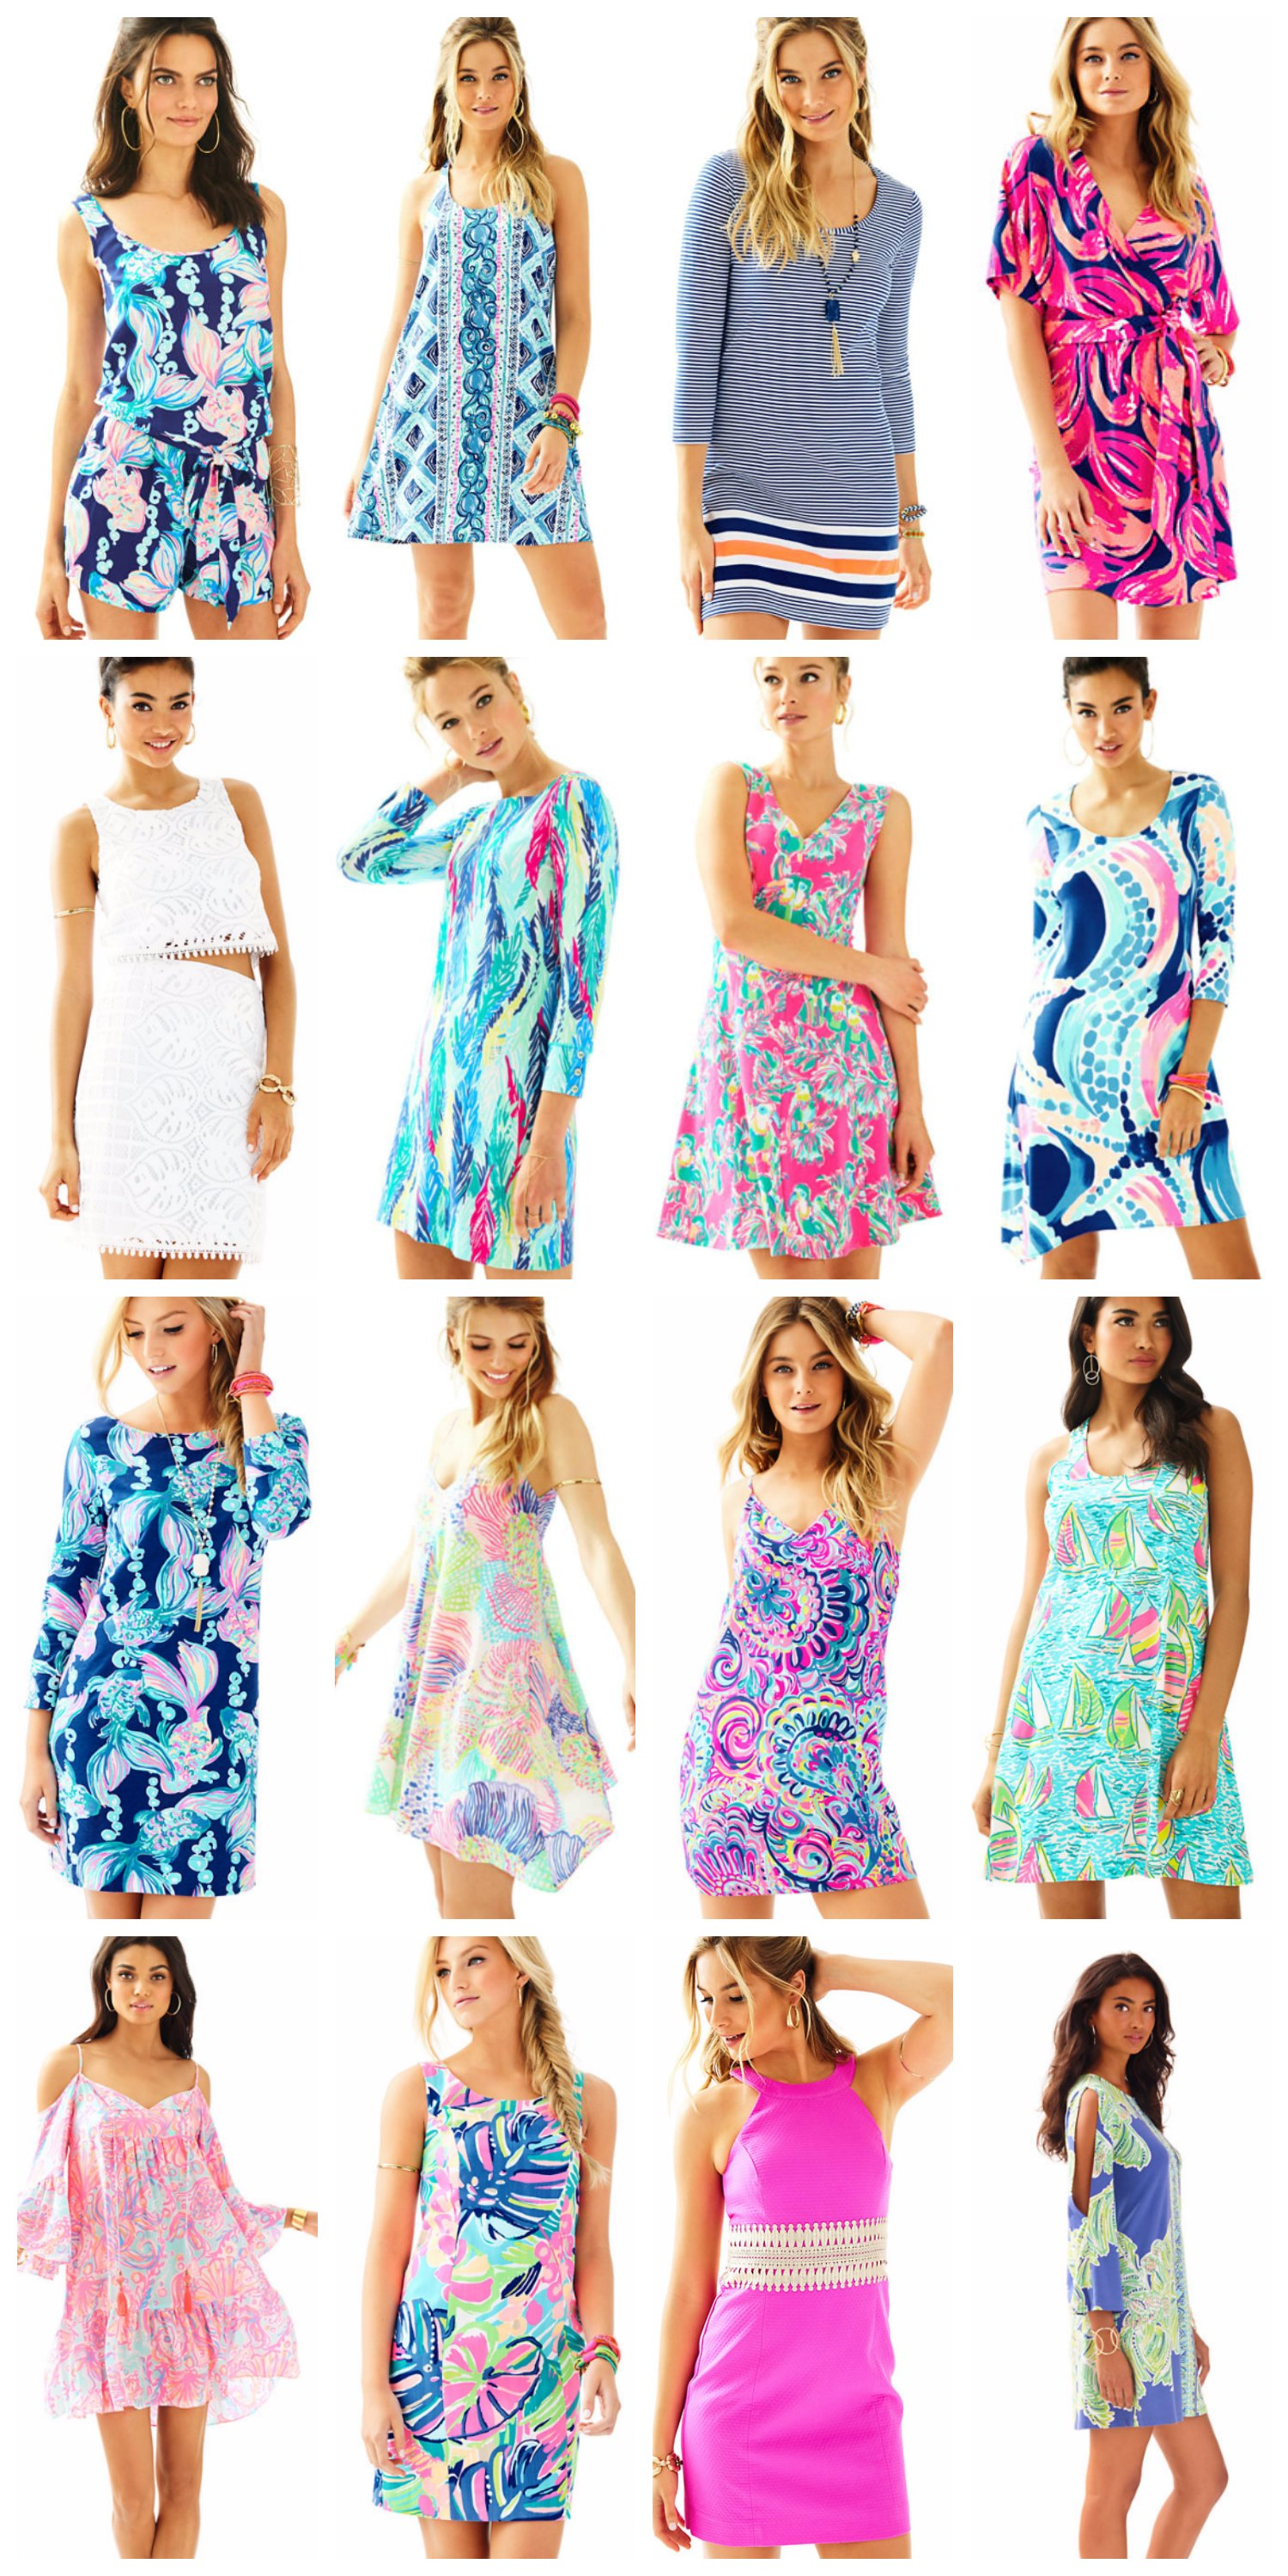 fb2a15927851a9 Lilly Pulitzer New Releases Summer 2016 + After Party Sale Information by  style blogger Ashley Brooke